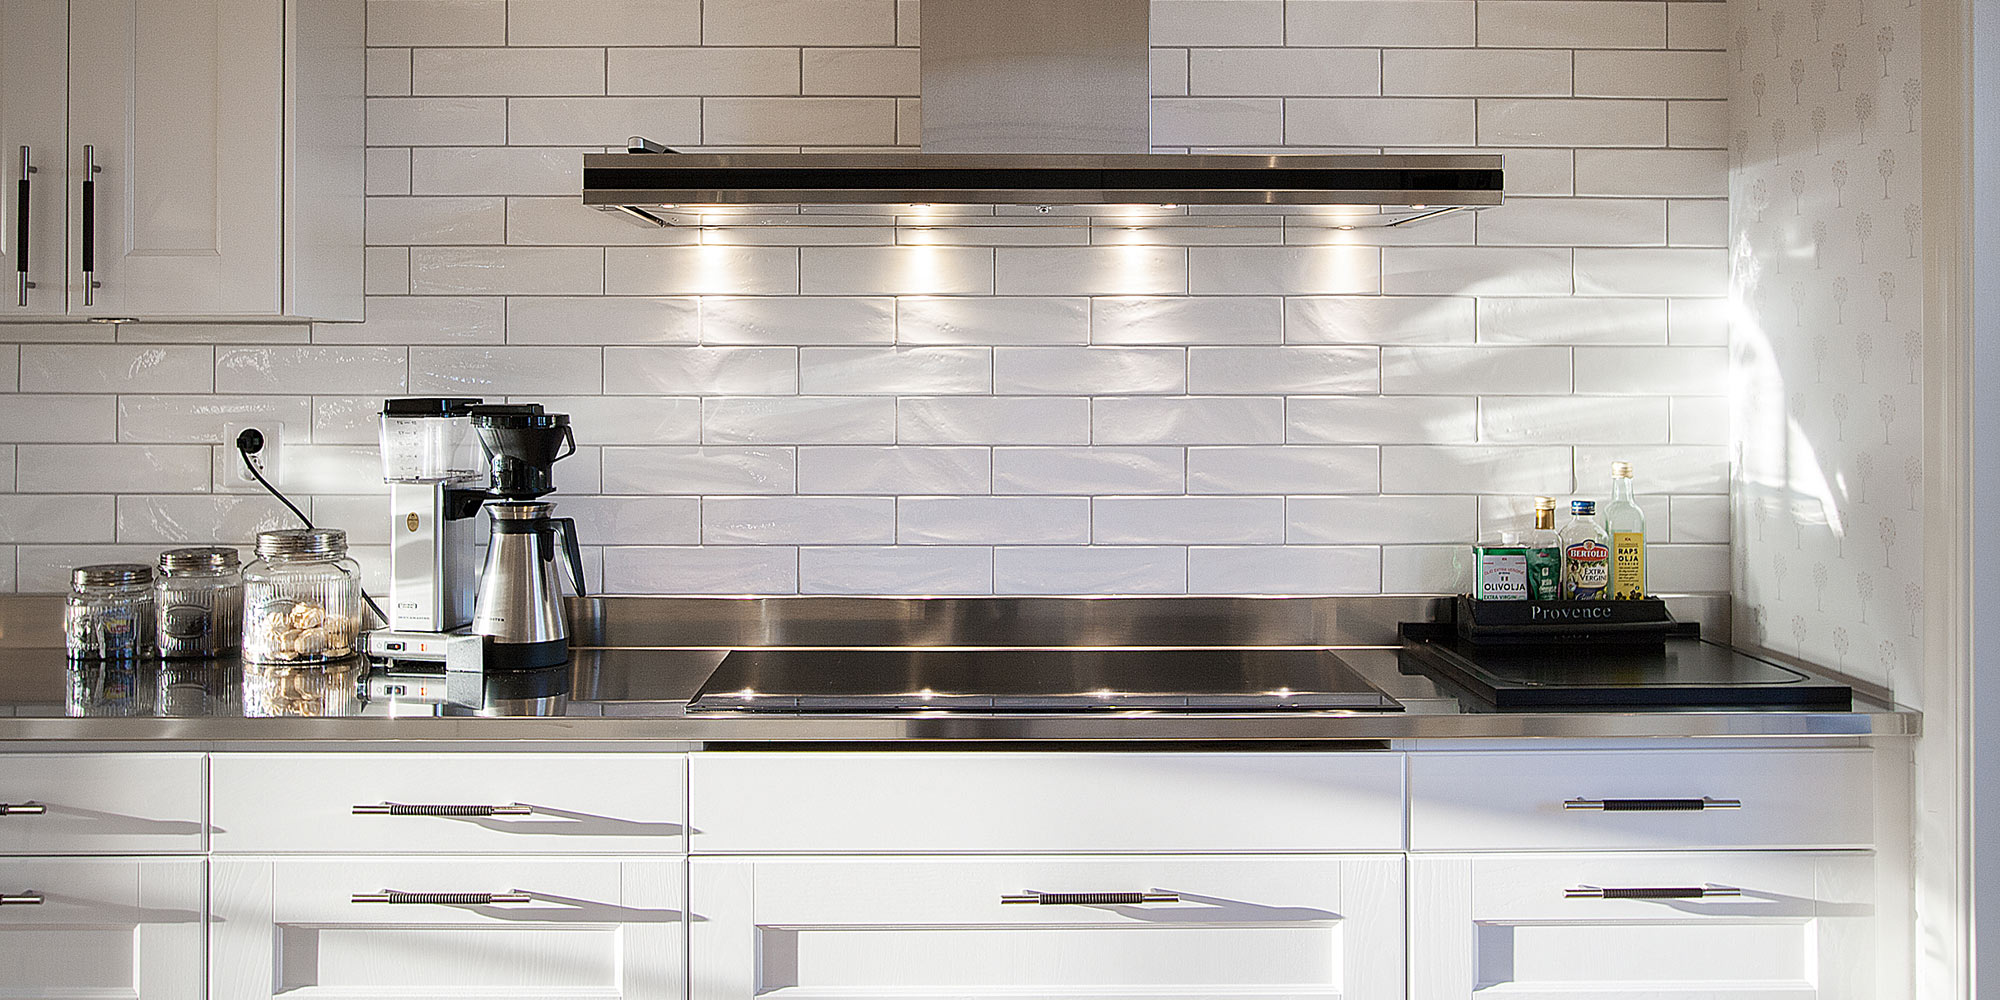 New Yorker By Settecento Kitchen Backsplash Ideas